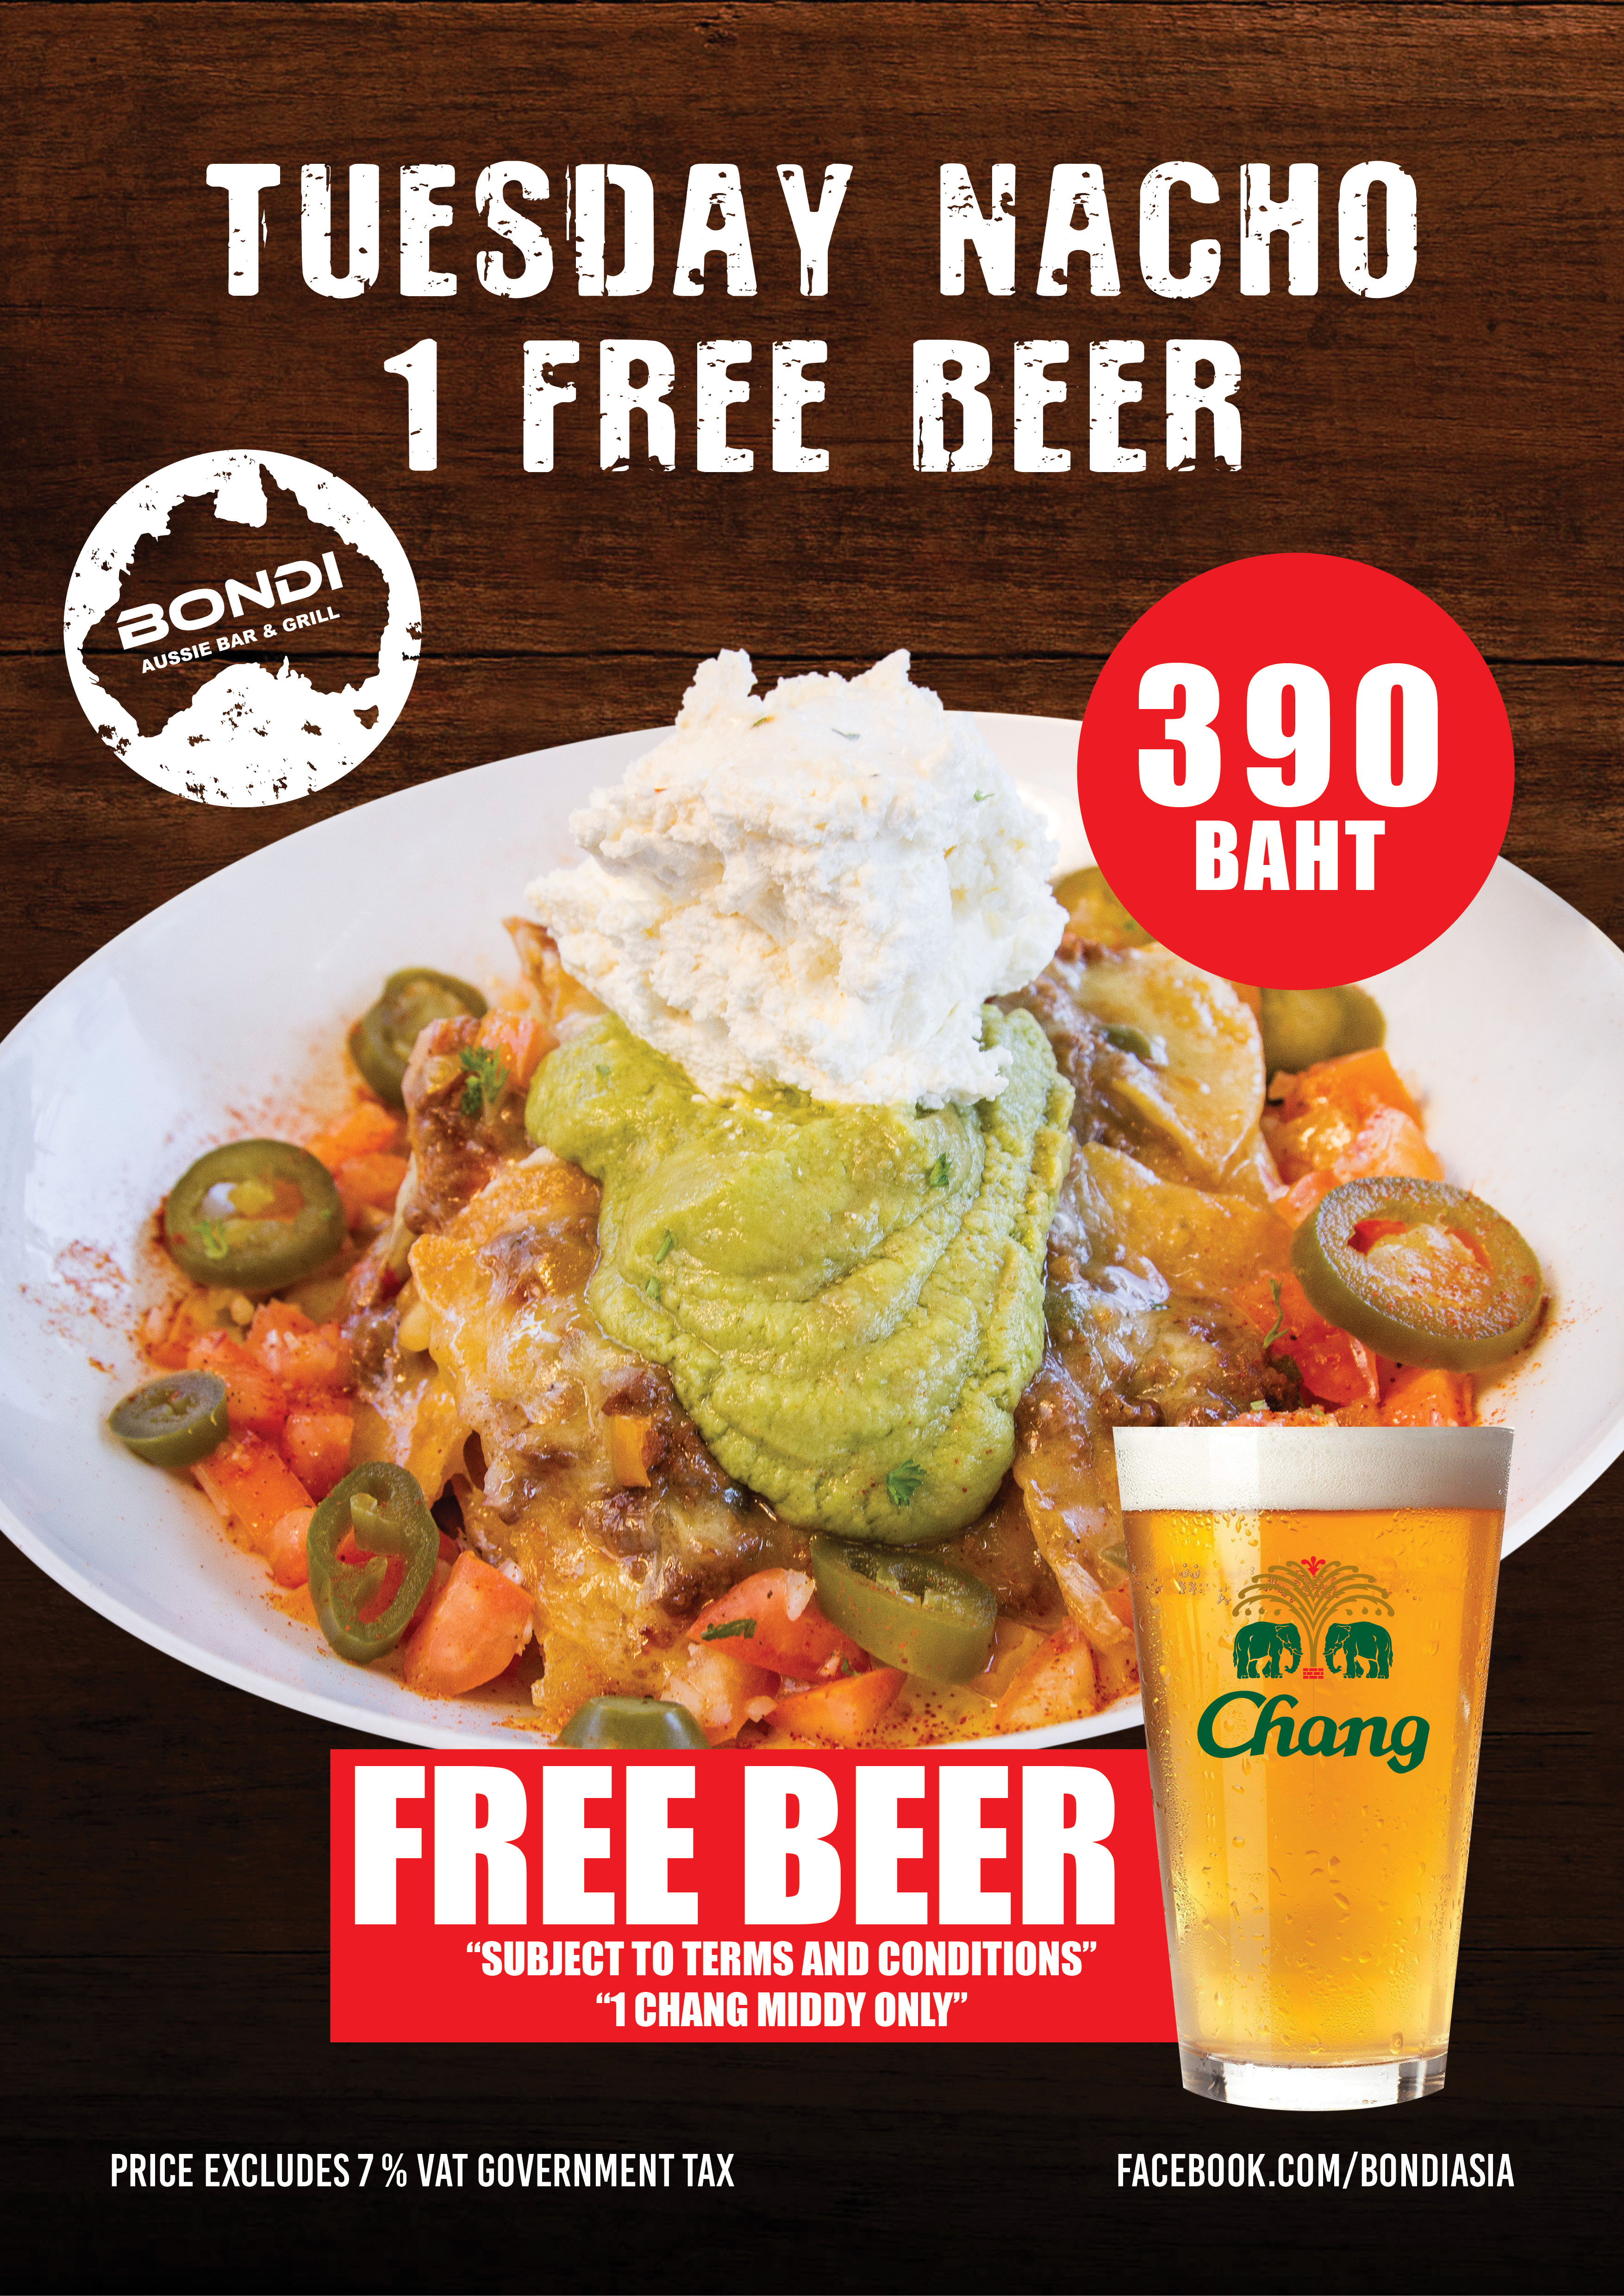 2 Tuesday Nacho's restaurant food Phuket Bondi Aussie bar and grill Patong beach Phuket - Bondi Asia